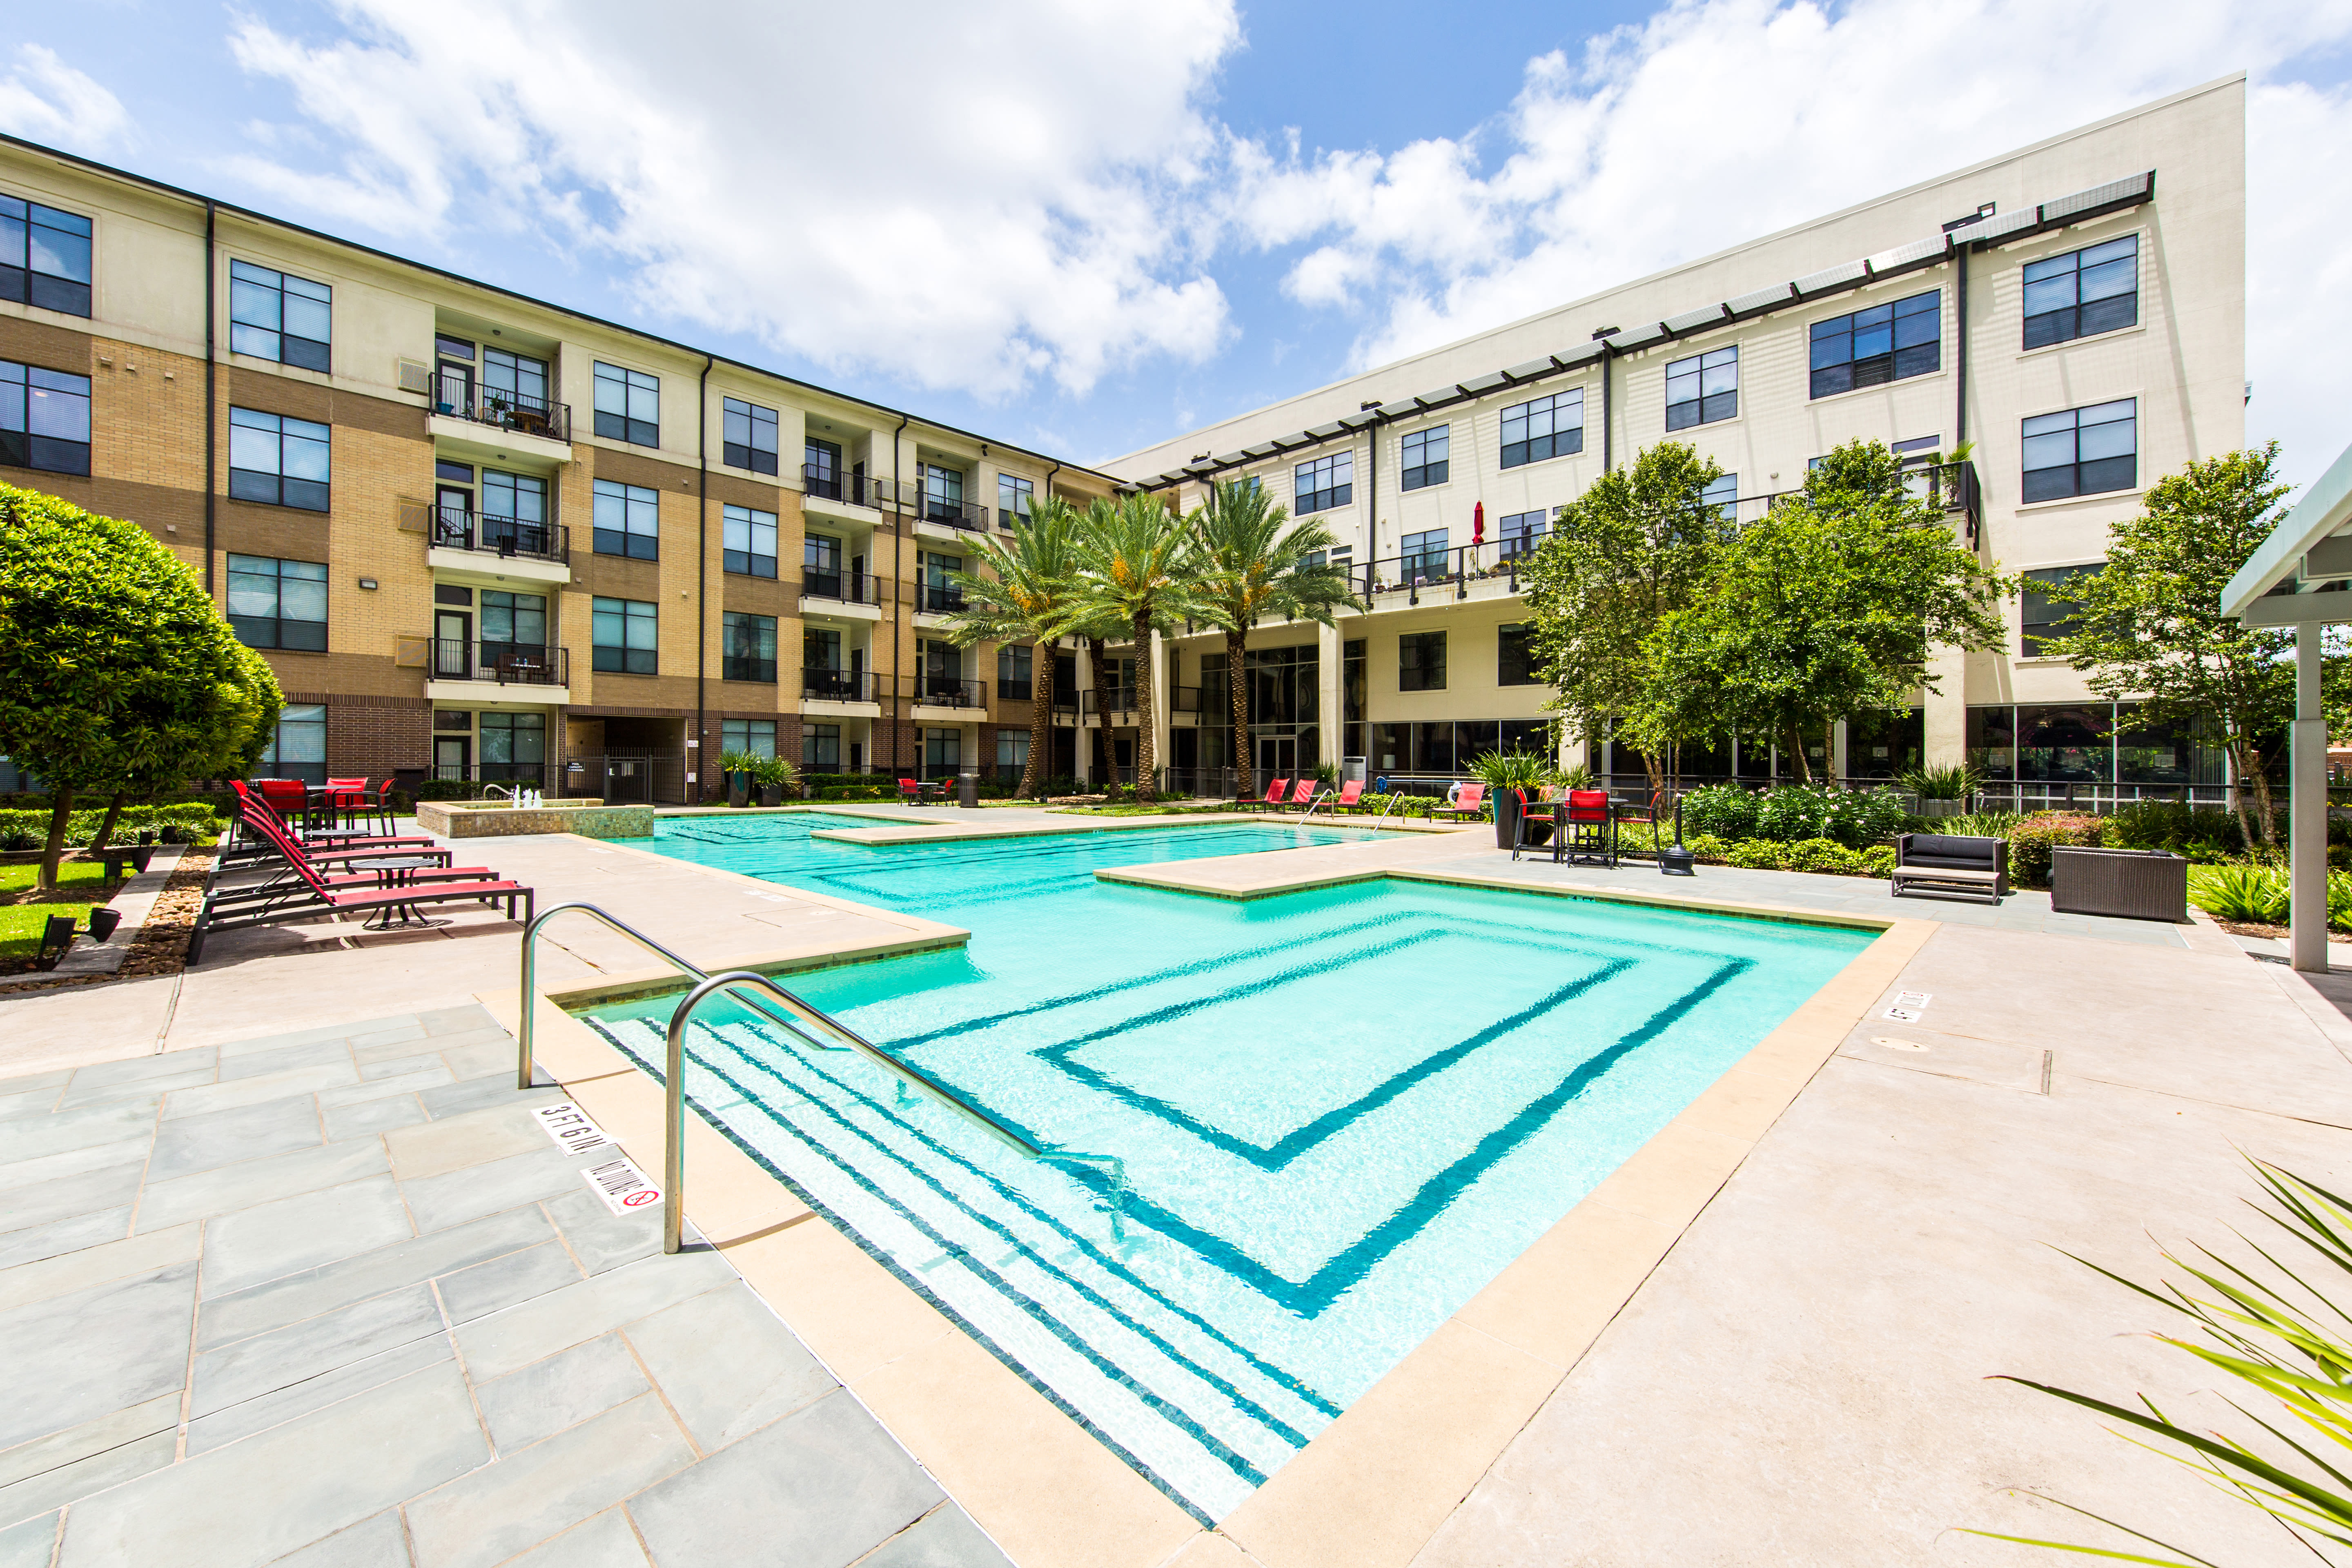 The large courtyard at the apartments for rent in Houston, TX